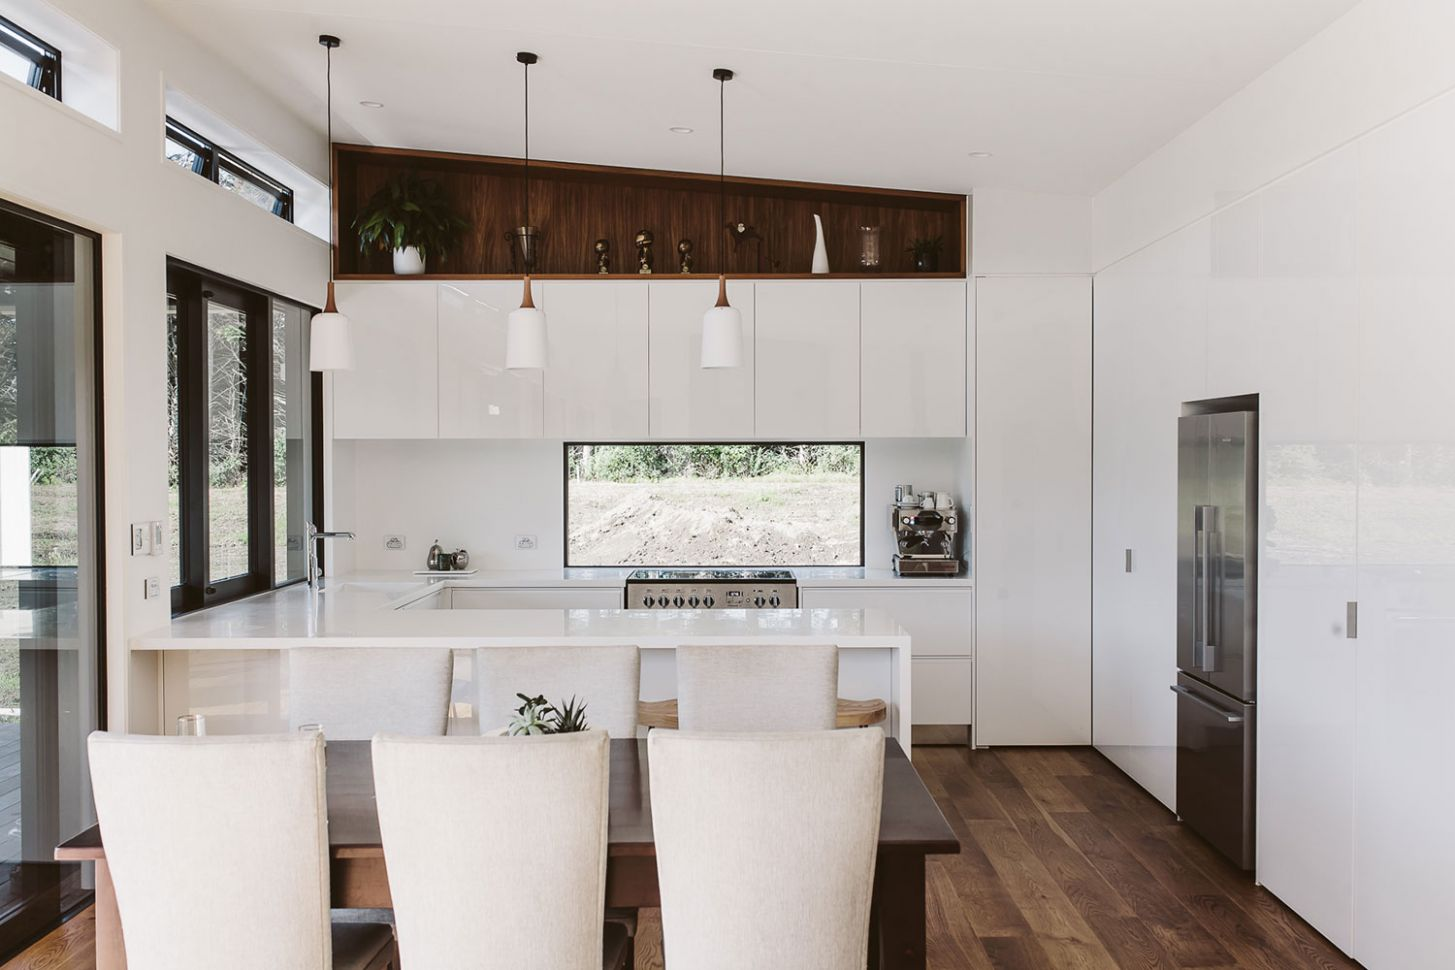 The Latest Kitchen Material Trends To Inspire Your Dream ..